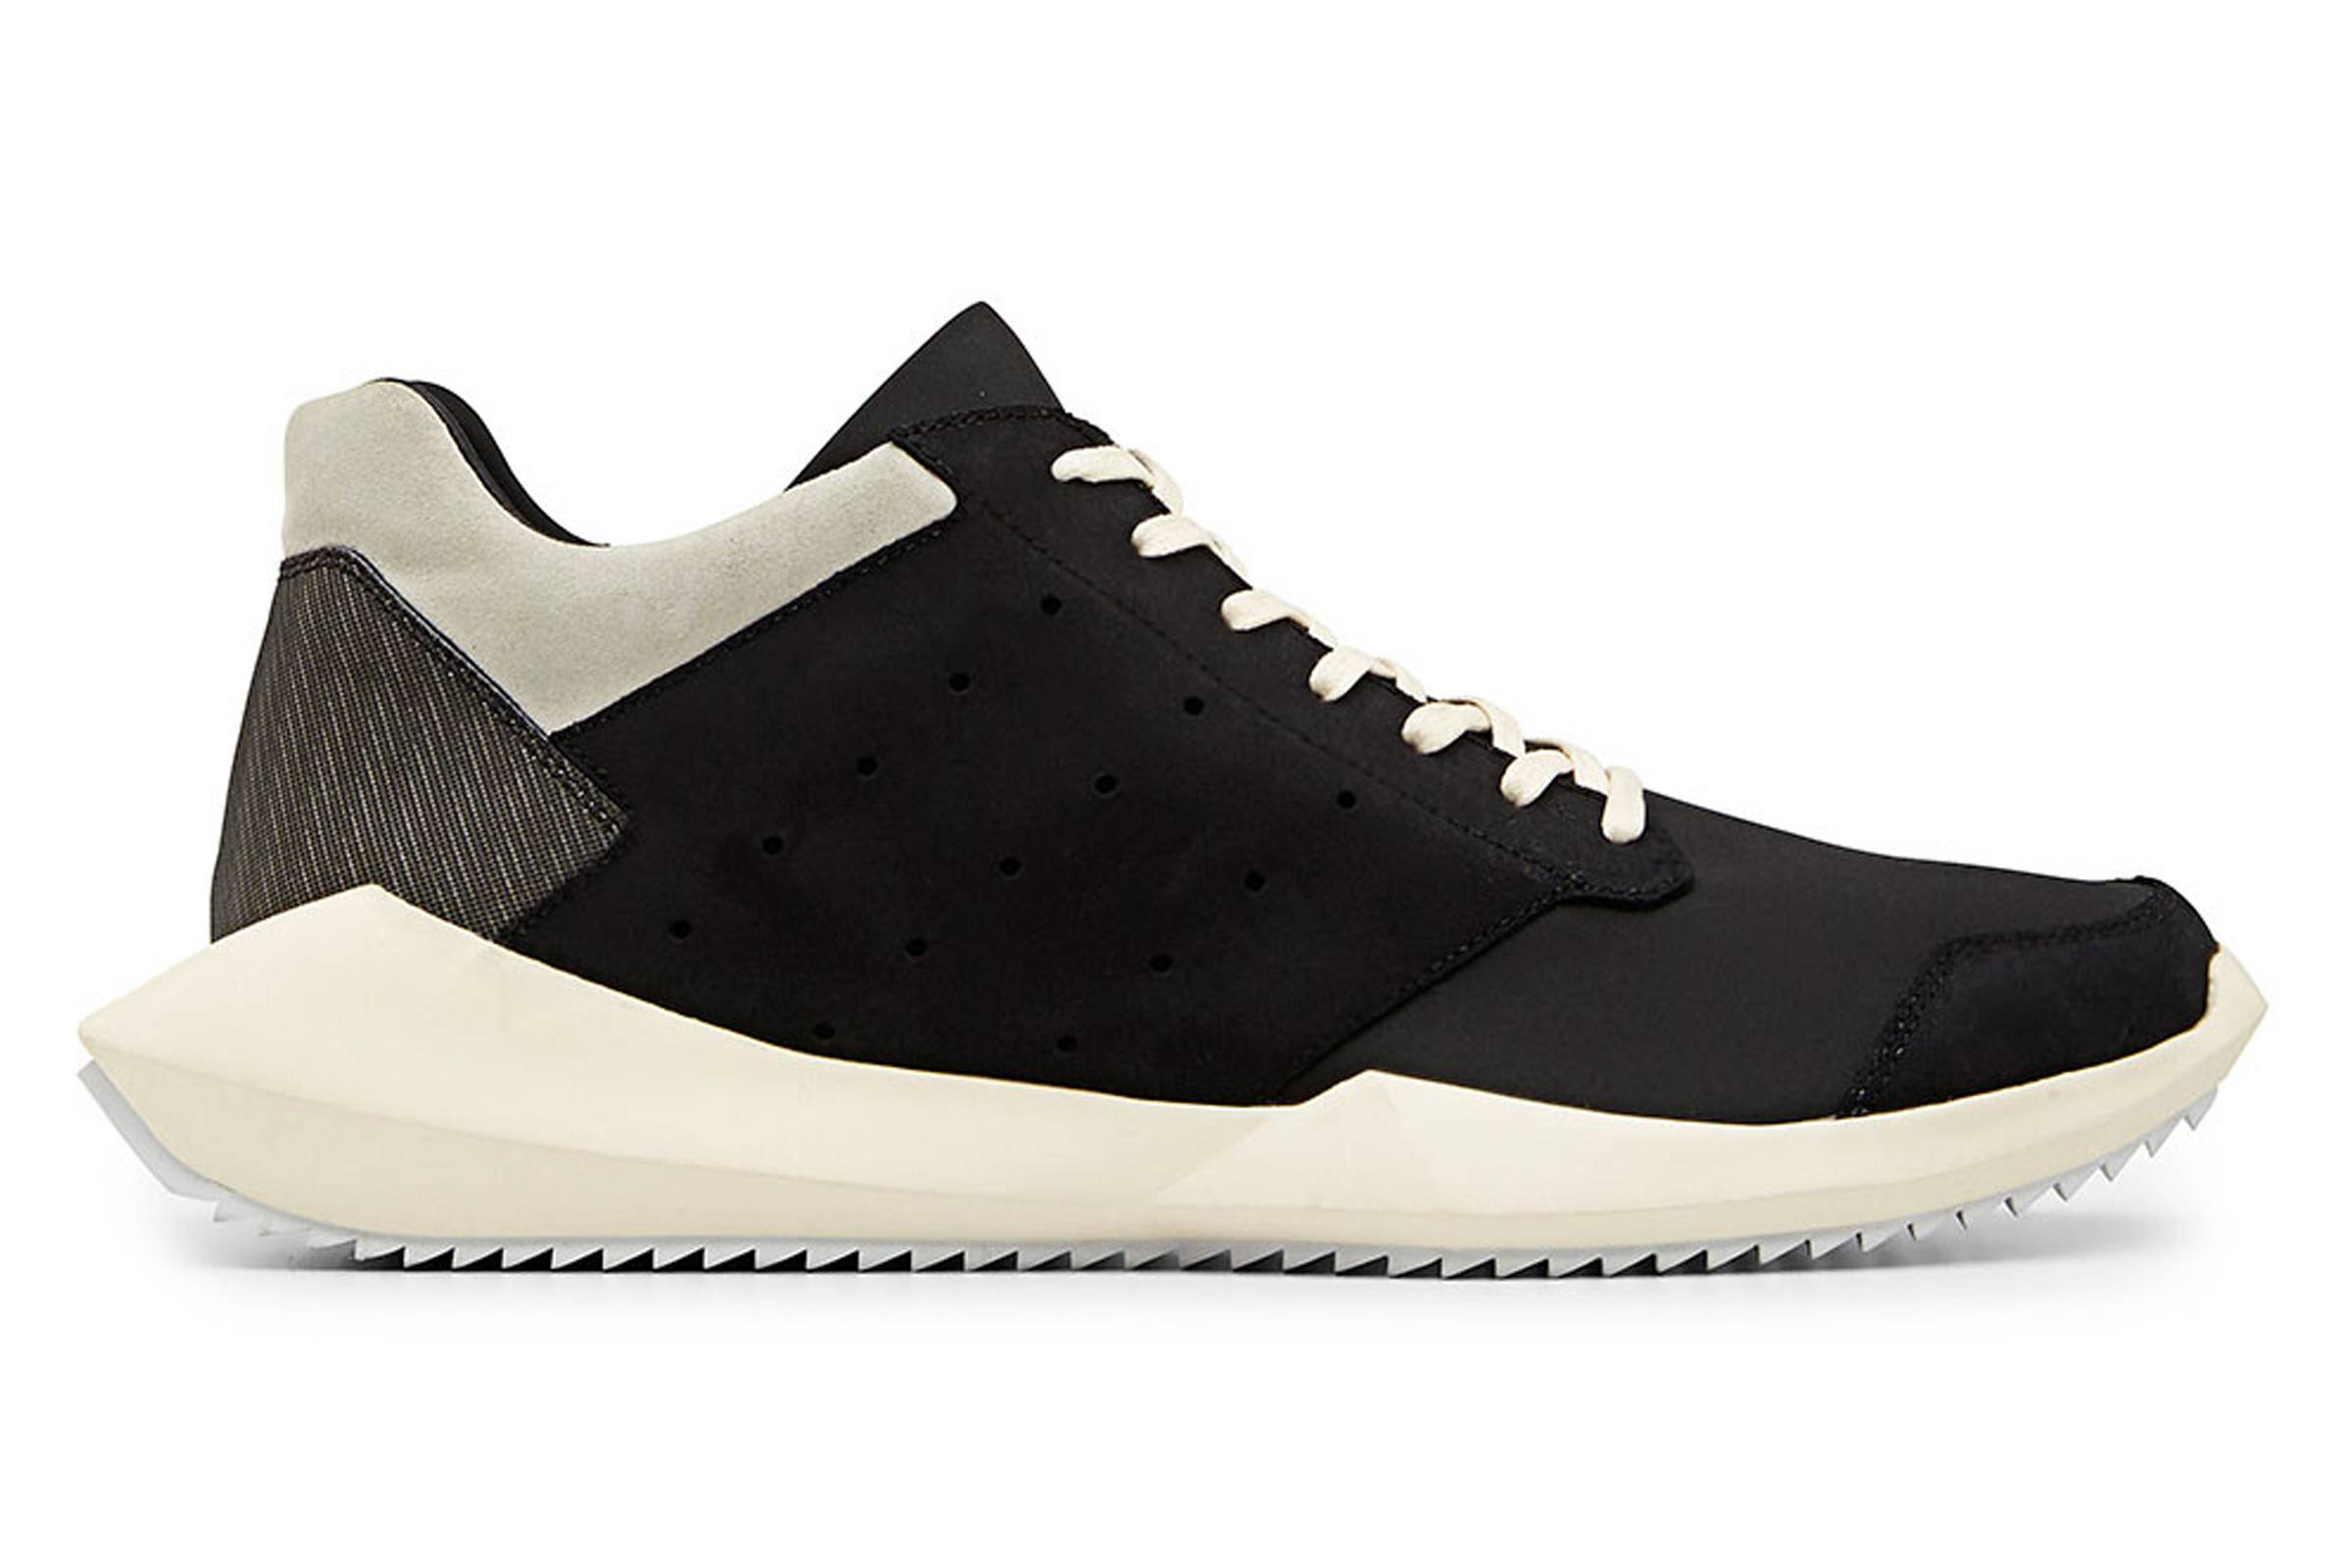 "promo code 2f6fa 34493 The second round of the Rick Owens x adidas partnership—tying into the F W  2014 ""MOODY"" collection—featured the Tech Runner. While it shares a similar  ..."